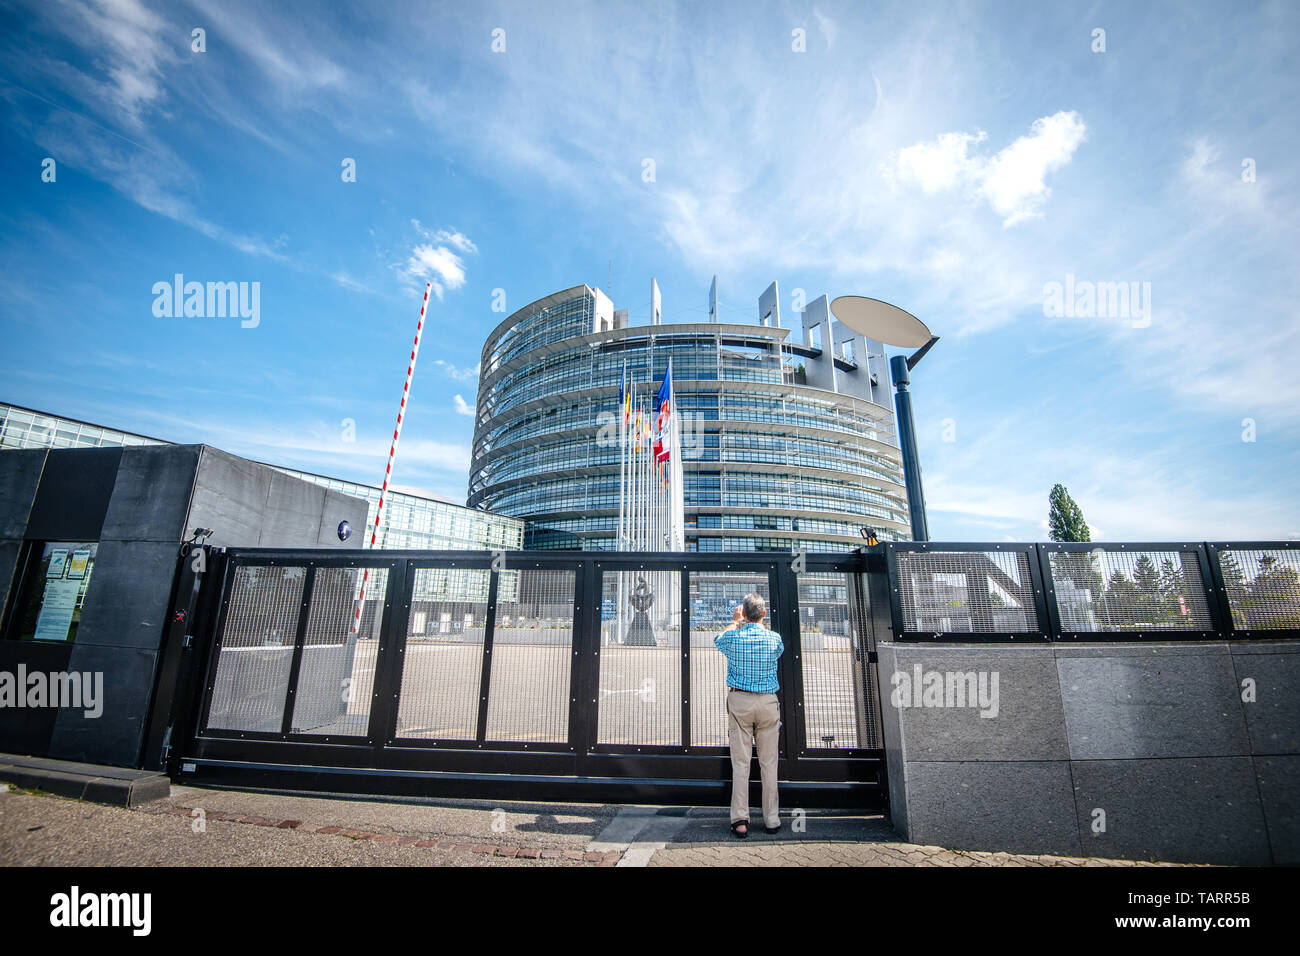 Strasbourg, France - May 26, 2019: Seniopr man taking photograph through the closed gate of the European Parliament headquarter with all European Union flags waving - clear blue sky in background horizontal image - Stock Image